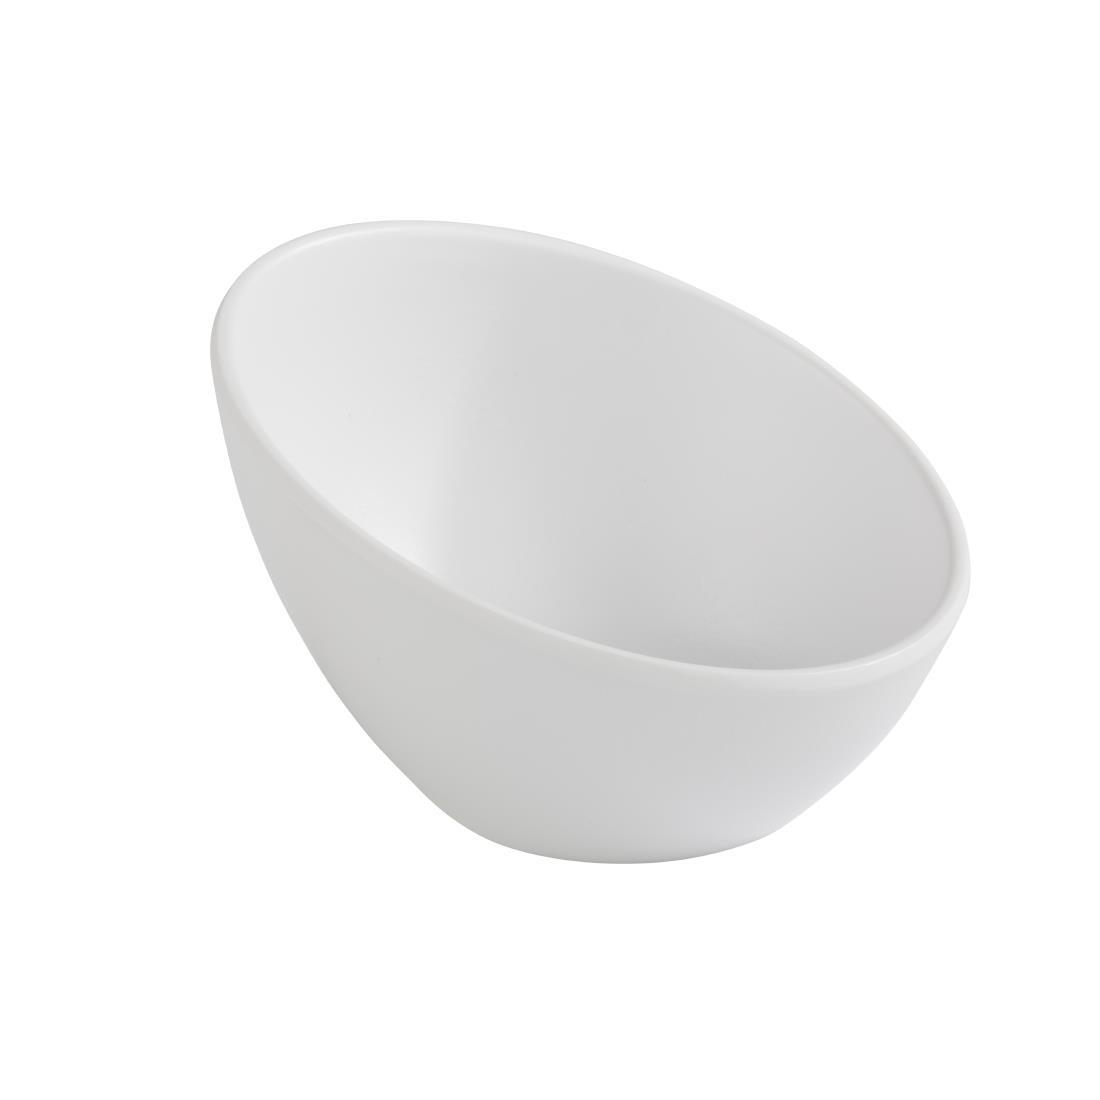 DA296 - APS Zen Melamine Round Sloped Bowl White 150ml - Each - DA296